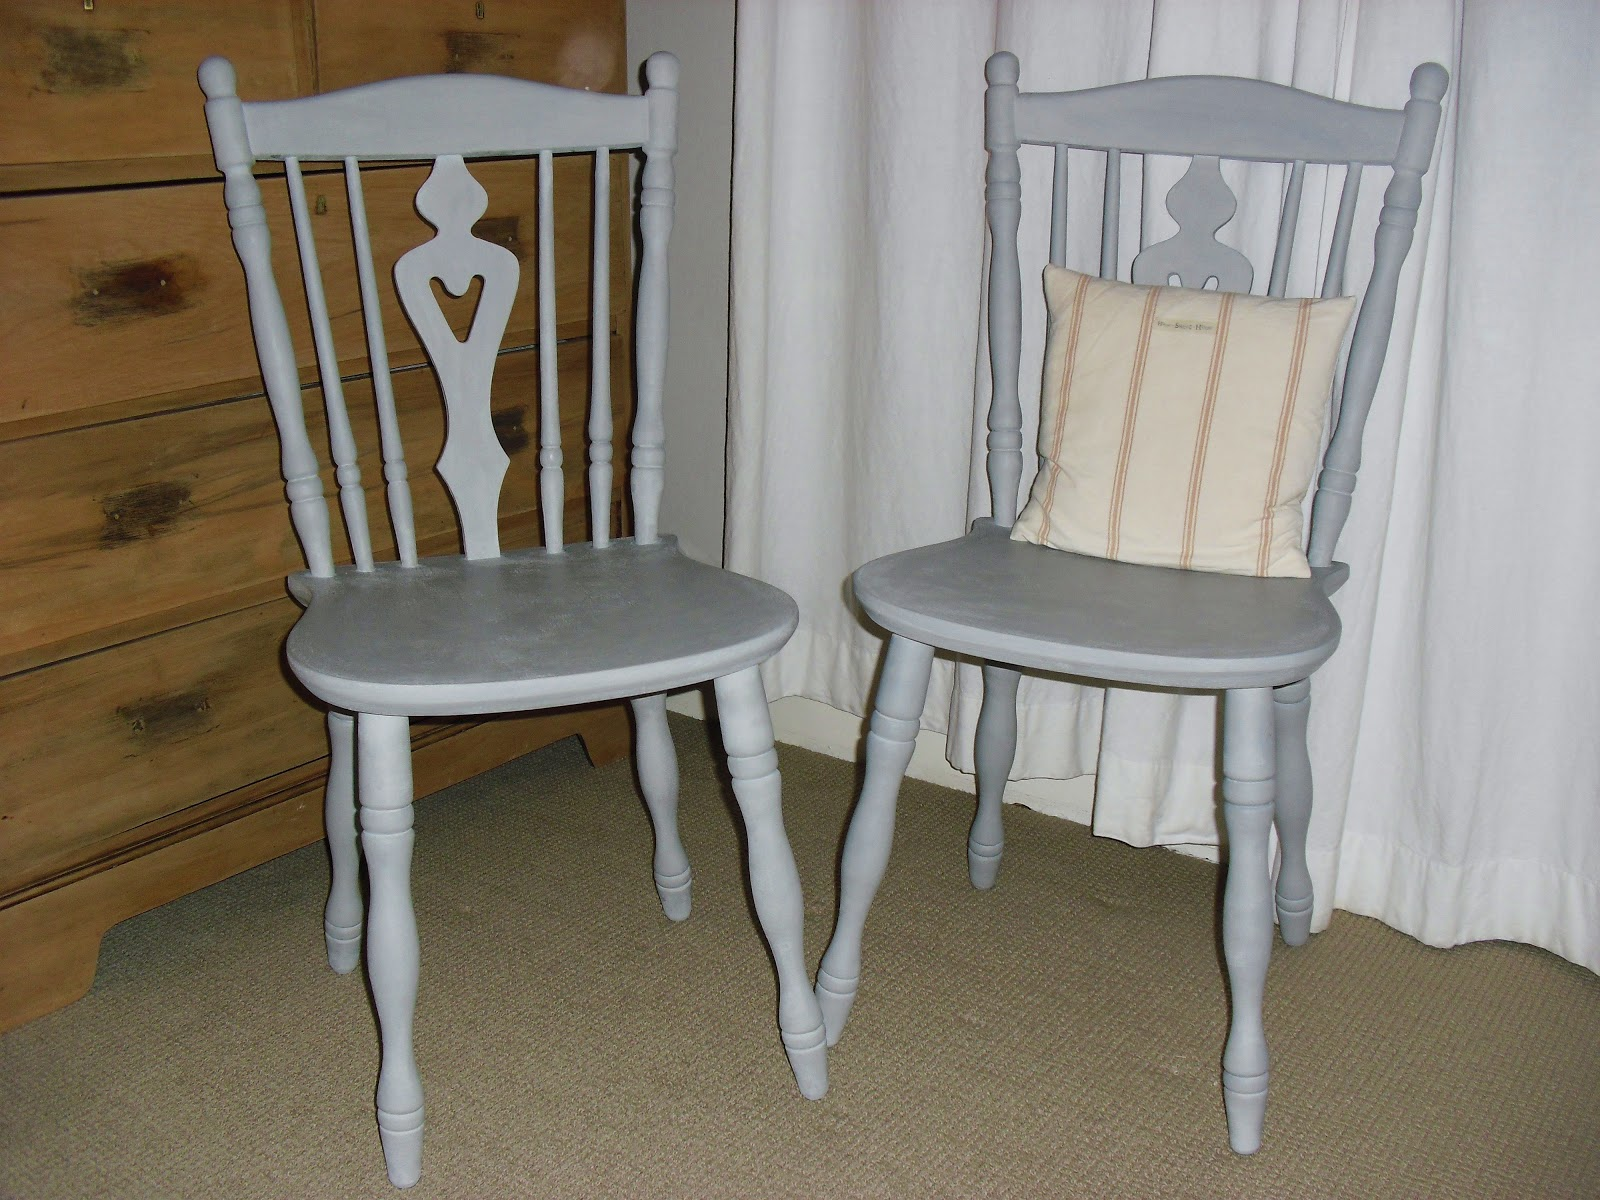 Grey Painted Chairs World Market Dining Chair Faberdashery Paris